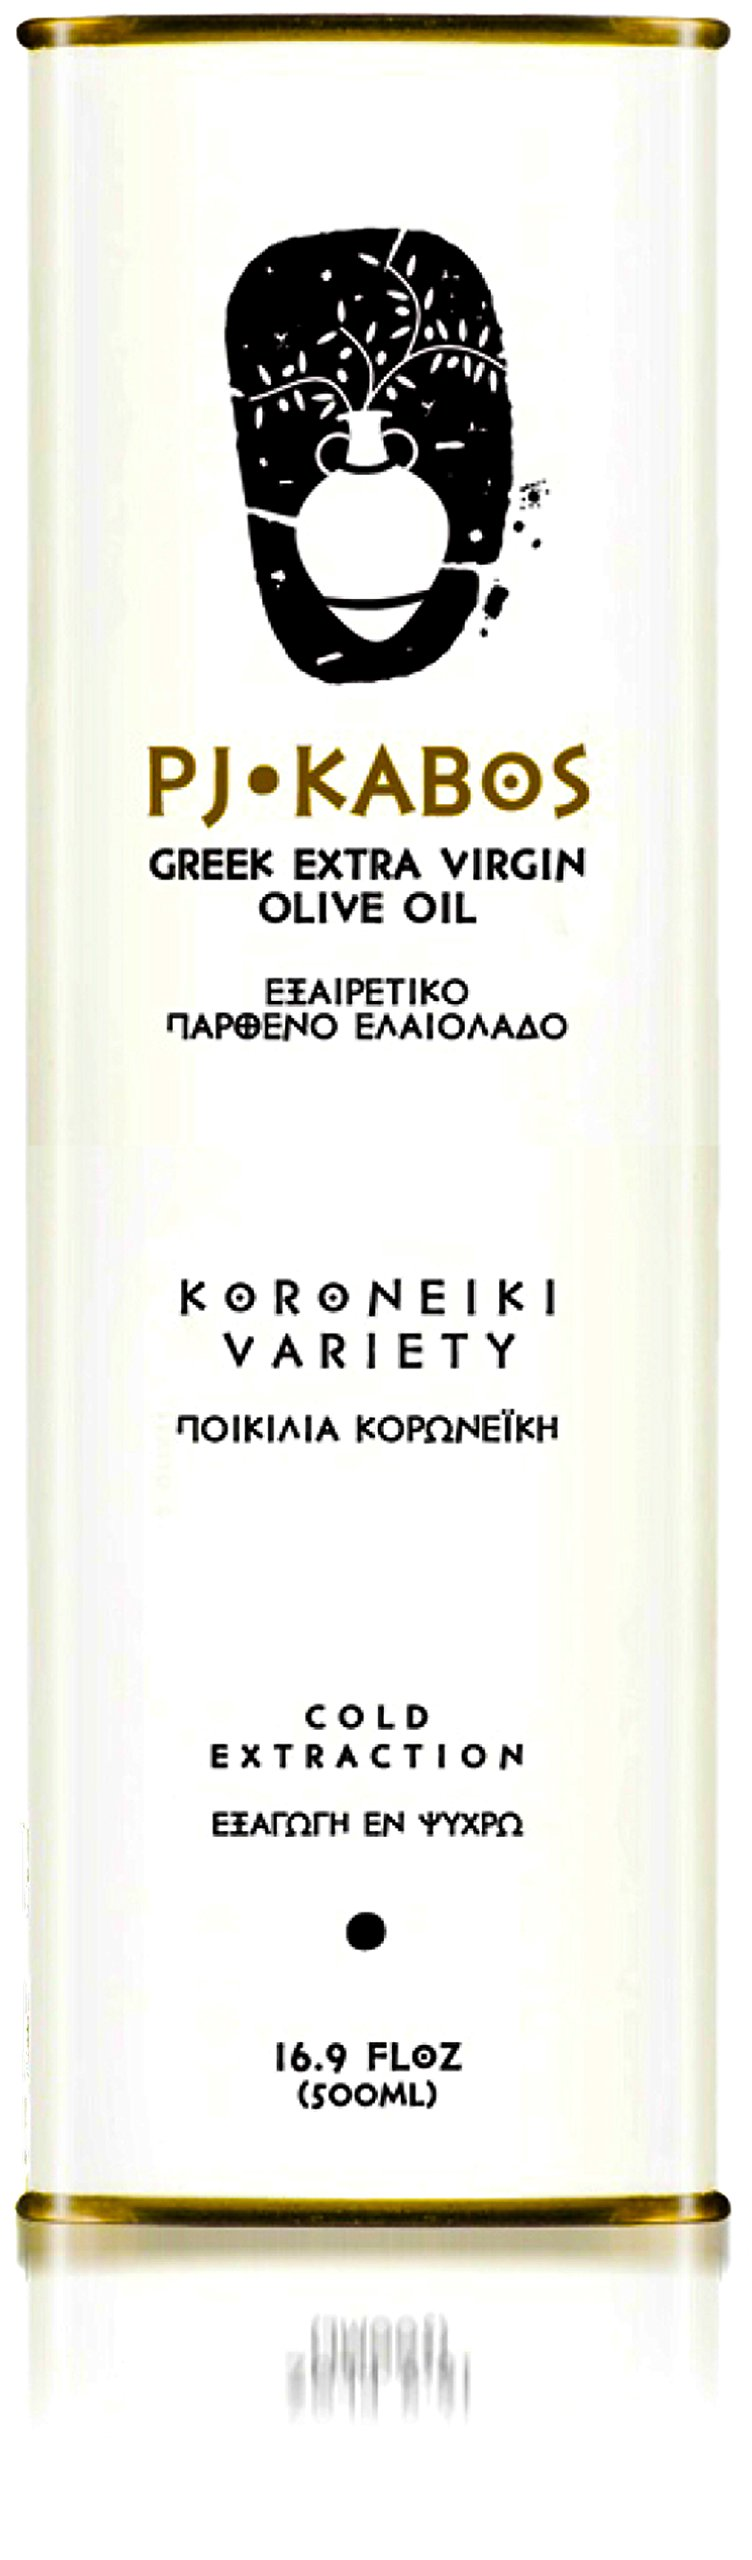 FRESH 2018/19 Harvest PJ KABOS 16.9Floz Greek Extra Virgin Olive Oil | 100% FRESH olive oil born in Ancient Olympia vicinity | From Greece | KORONEIKI Variety |